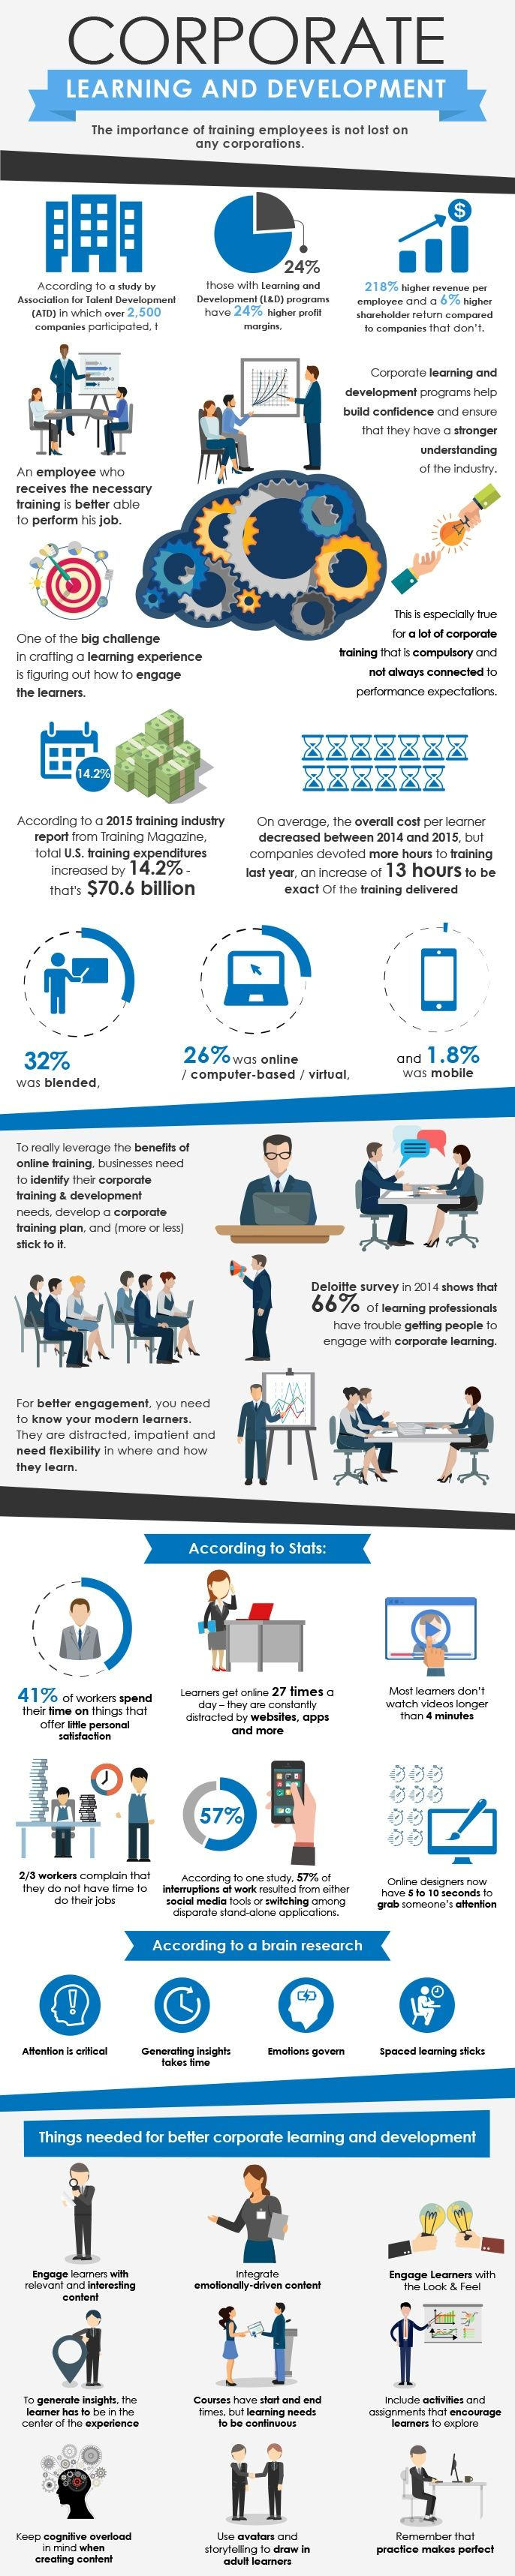 Corporate Learning and Development Infographic - http://elearninginfographics.com/corporate-learning-and-development-infographic/